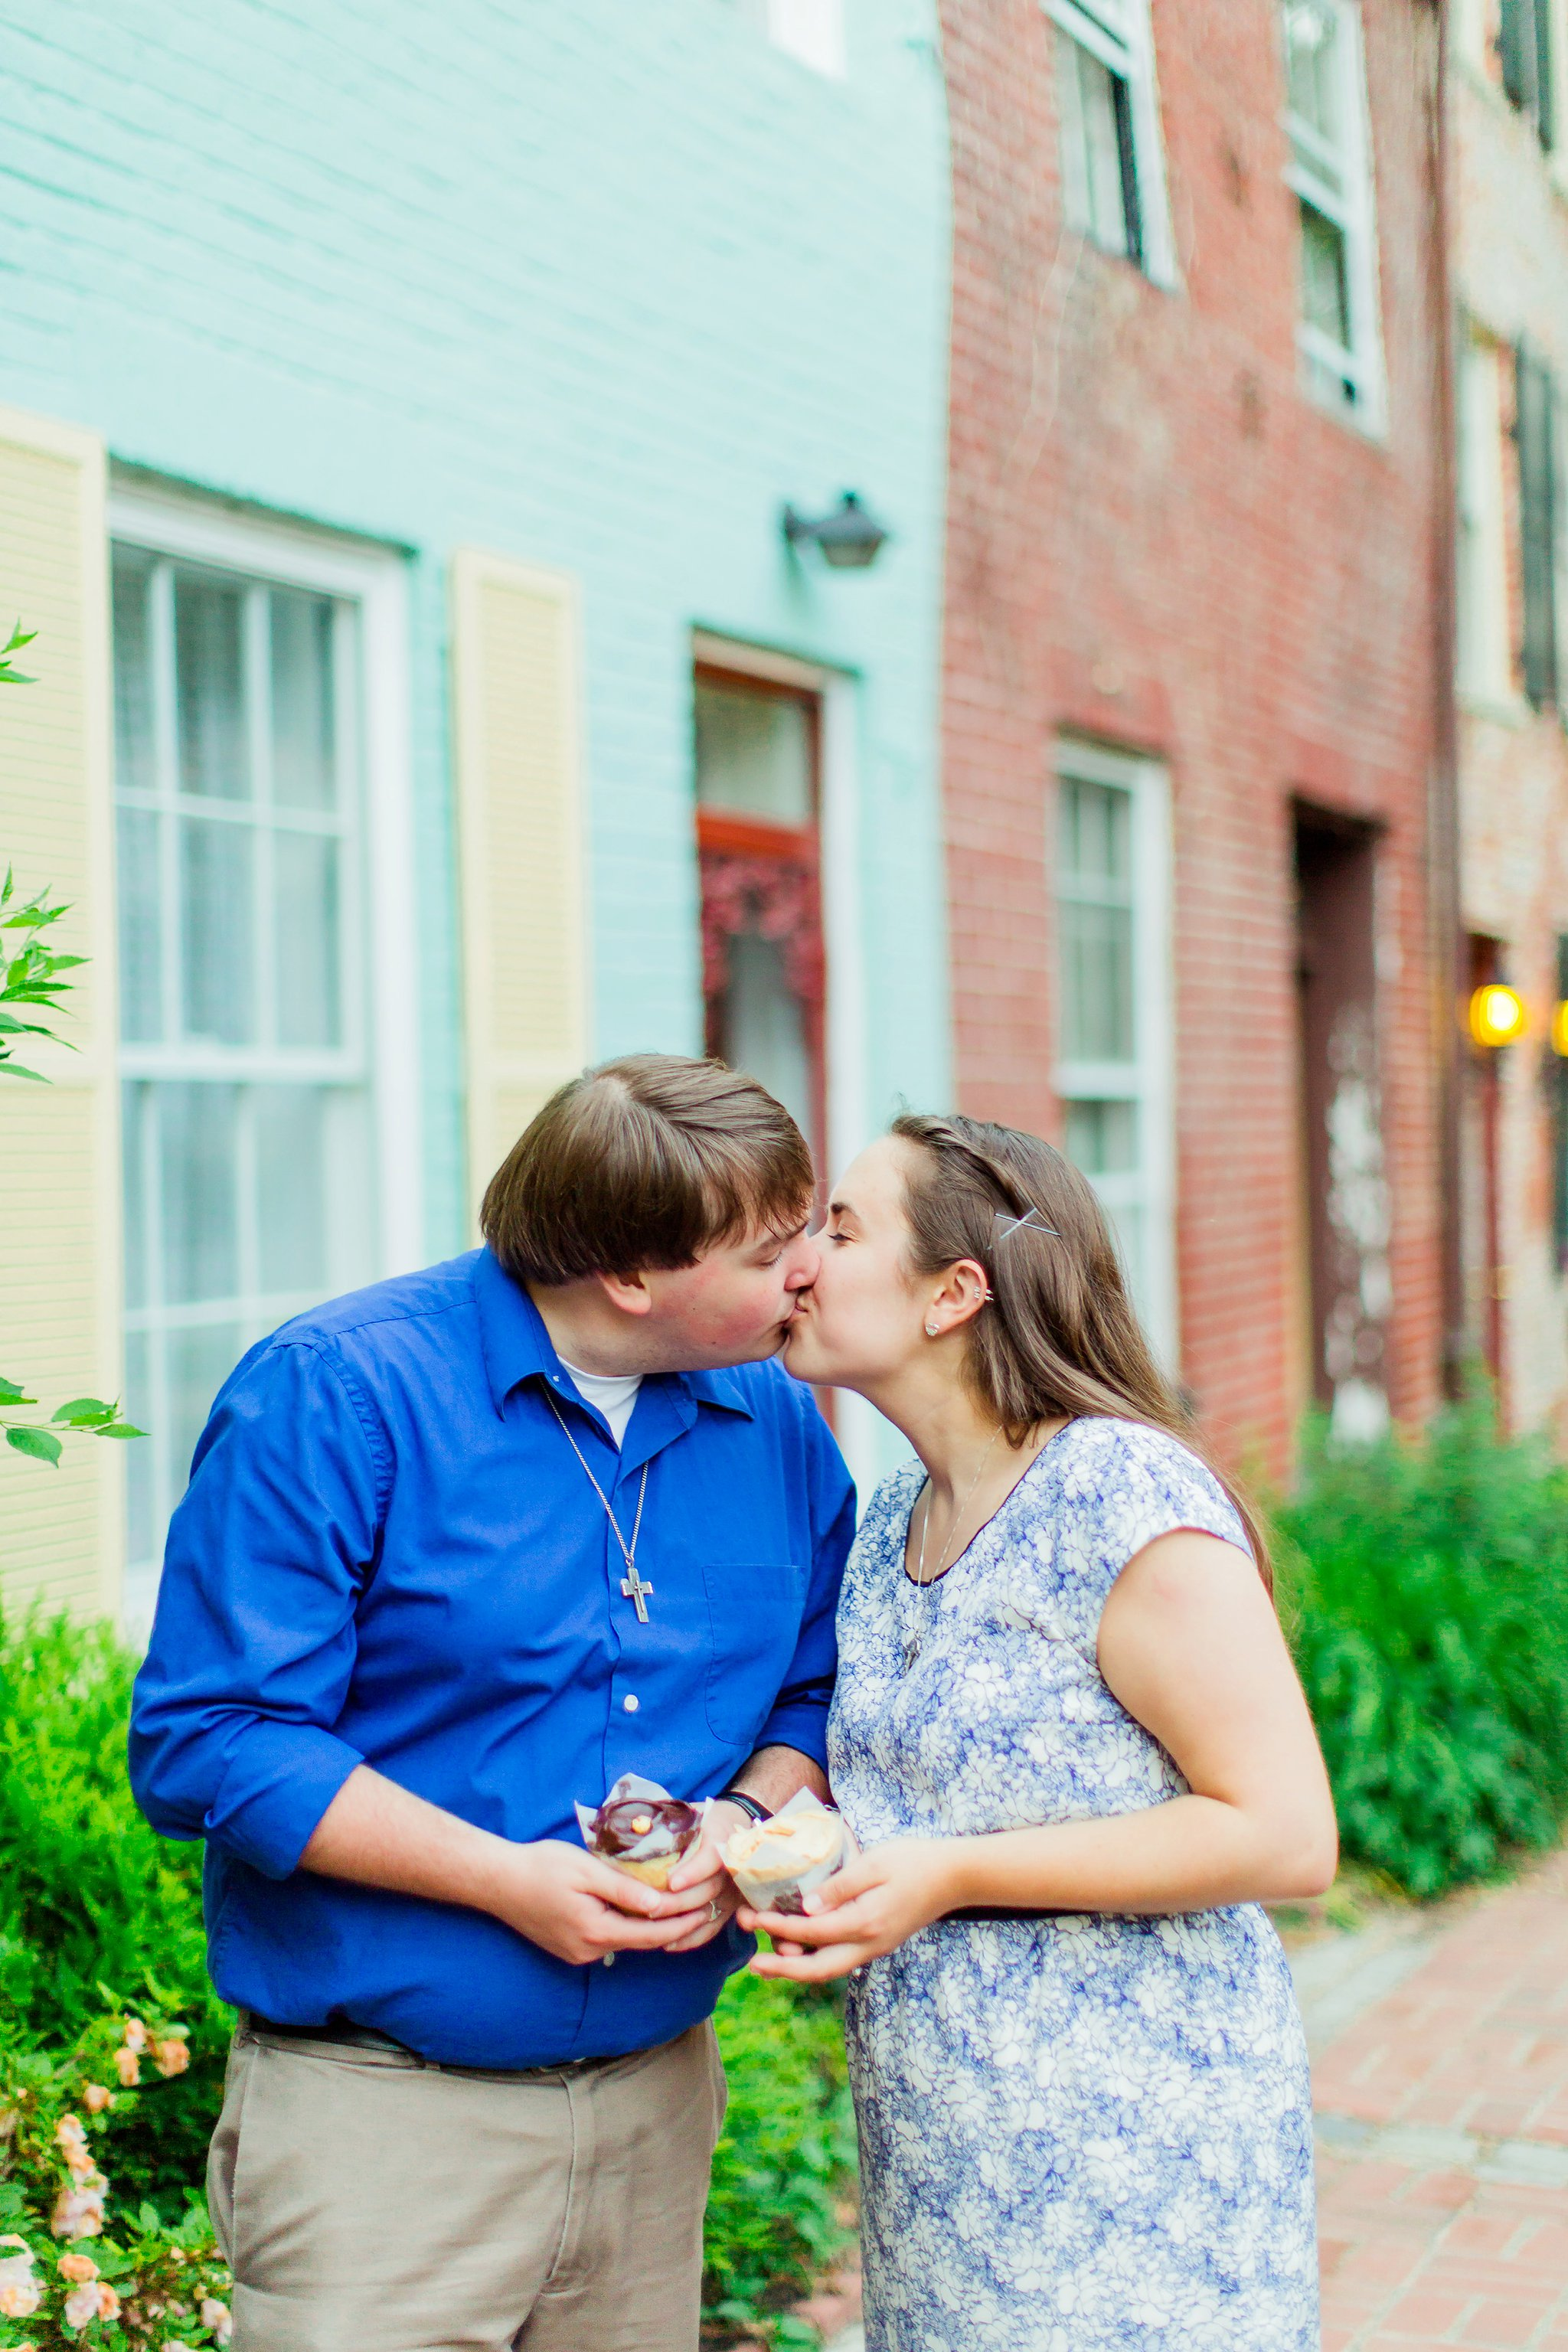 Georgetown Engagement Photography Lindsay & Joey DC Wedding Photographer-1933.jpg